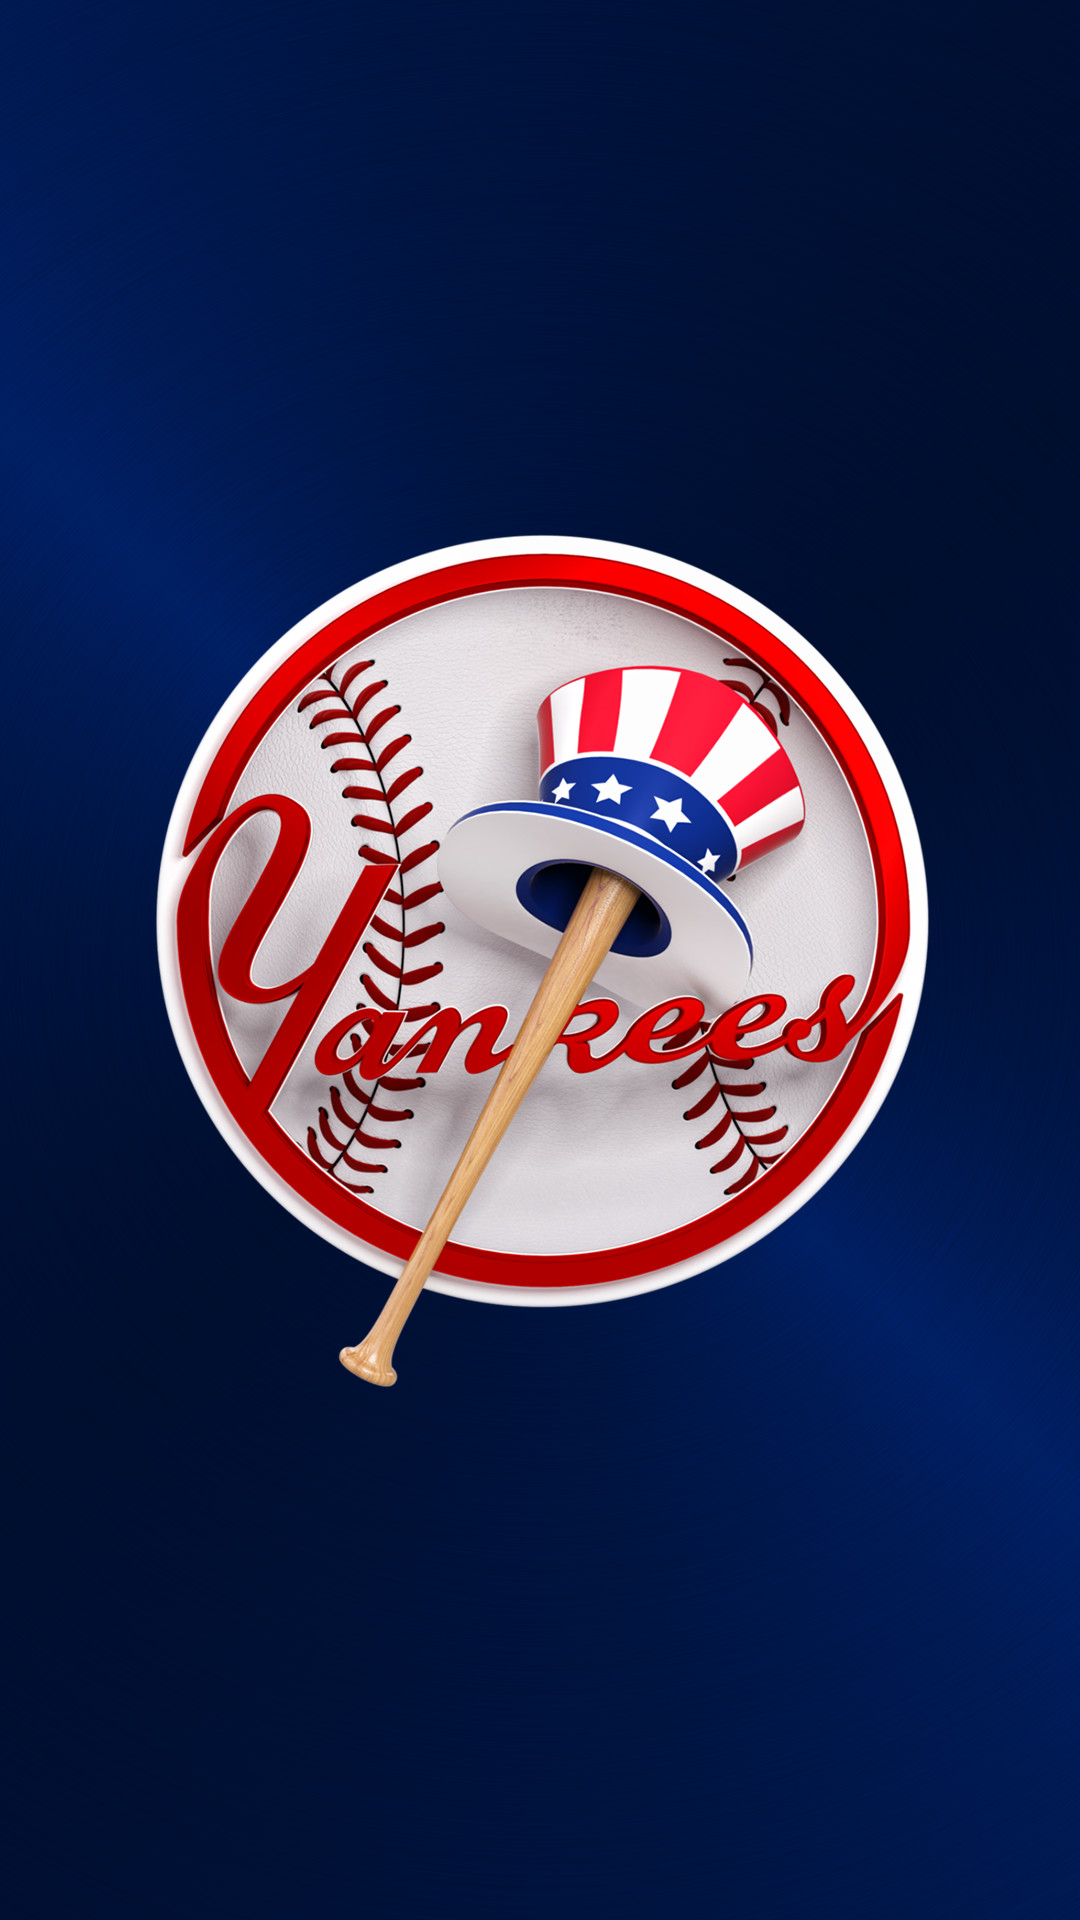 HD Baseball Background for Iphone.